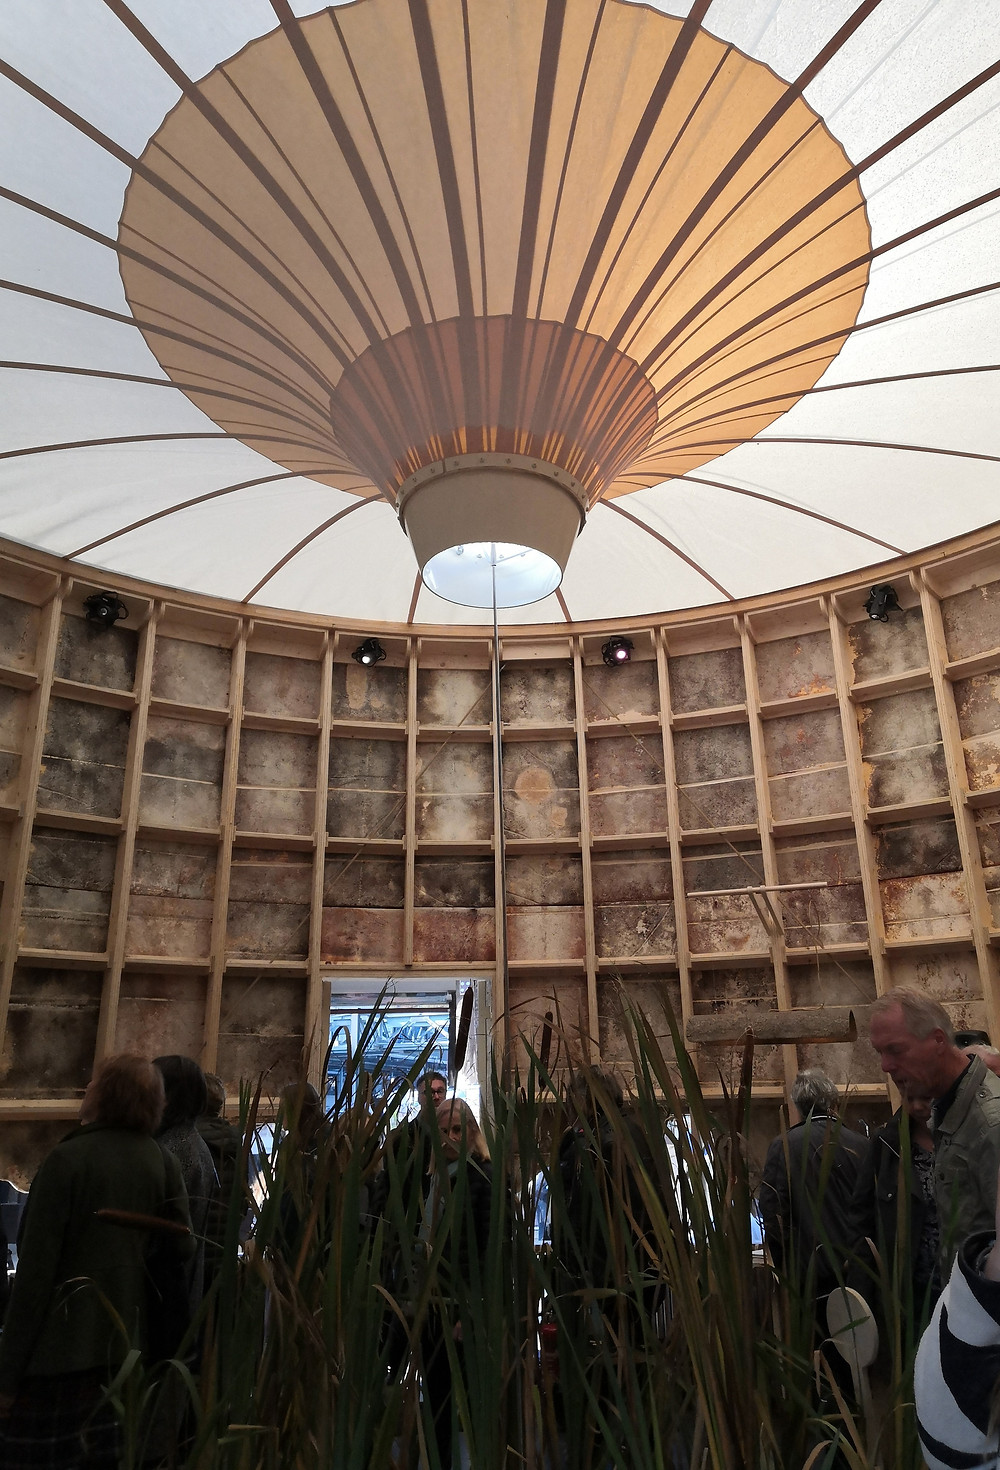 Inside of a round pavilion with central focus on the ceiling structure that looks like a wood and paper parasol